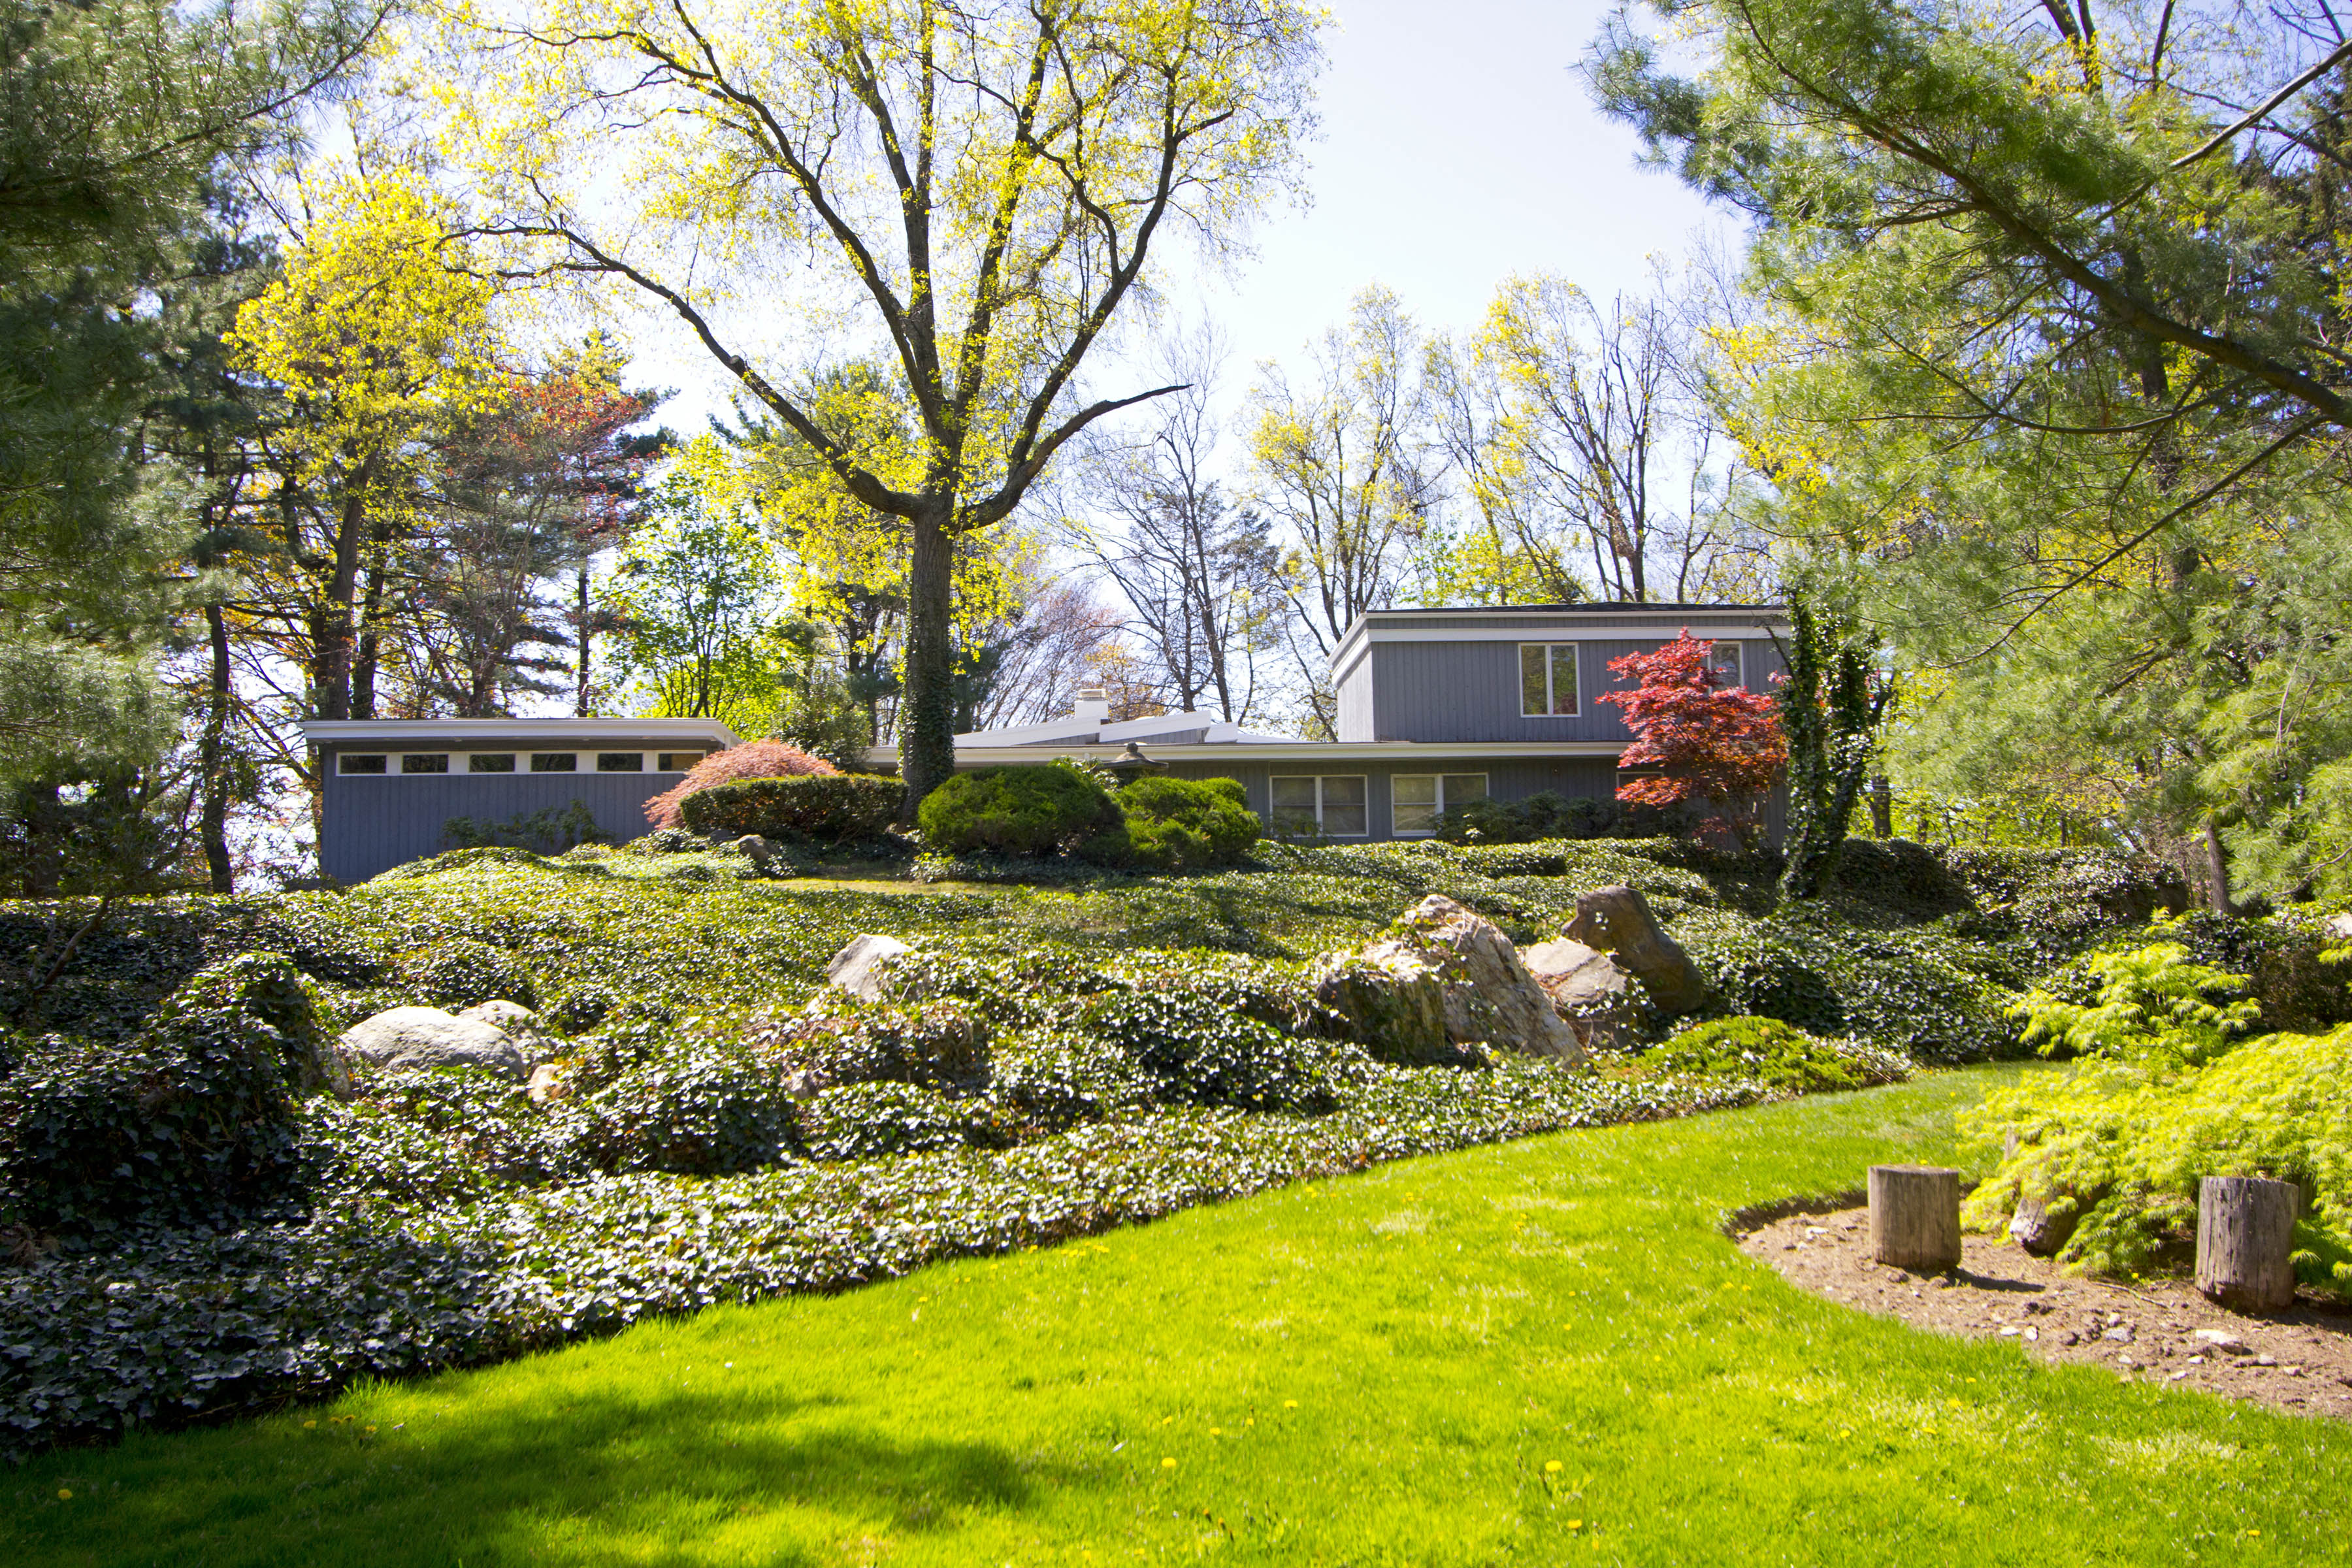 Single Family Home for Sale at Sun Drenched Mid-Century Contemporary 370 Clayton Road Scarsdale, New York 10583 United States